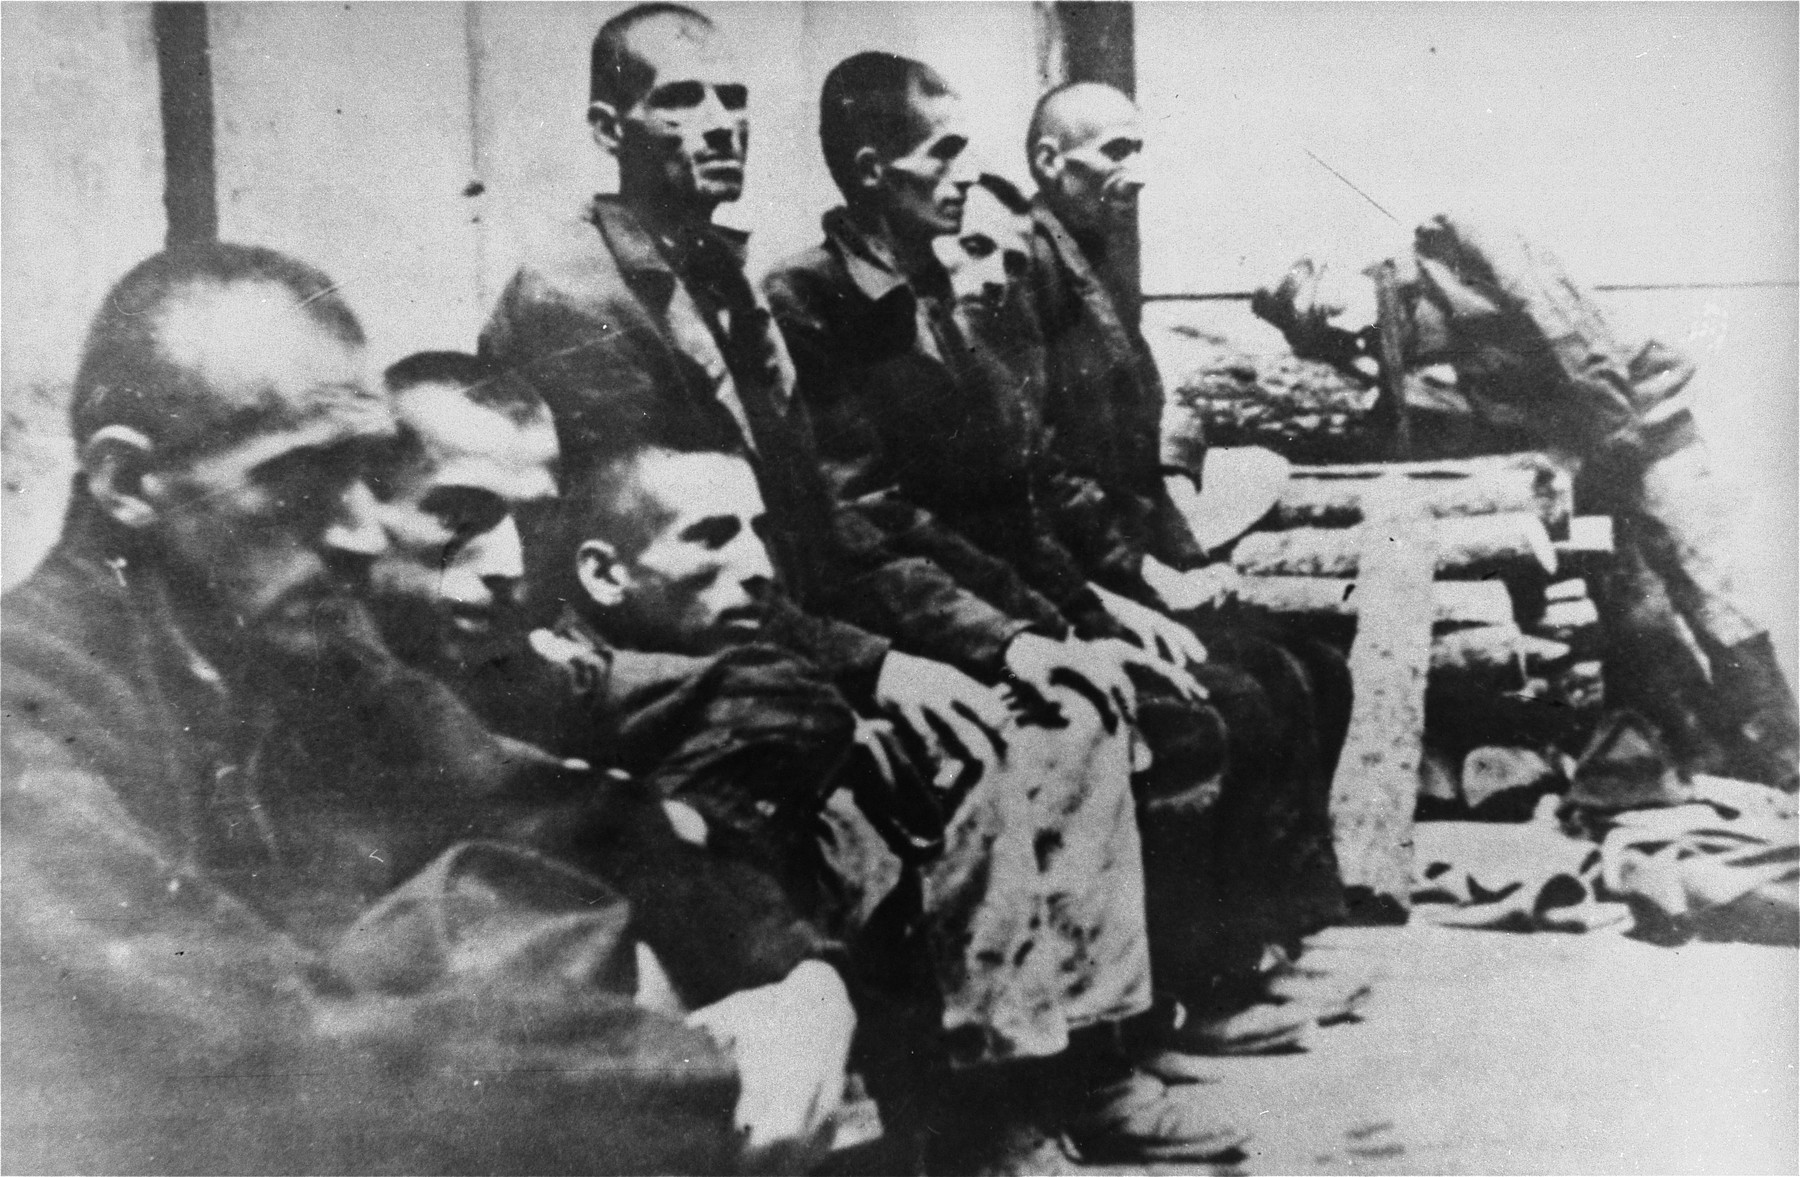 Serbian prisoners interned in Jasenovac.